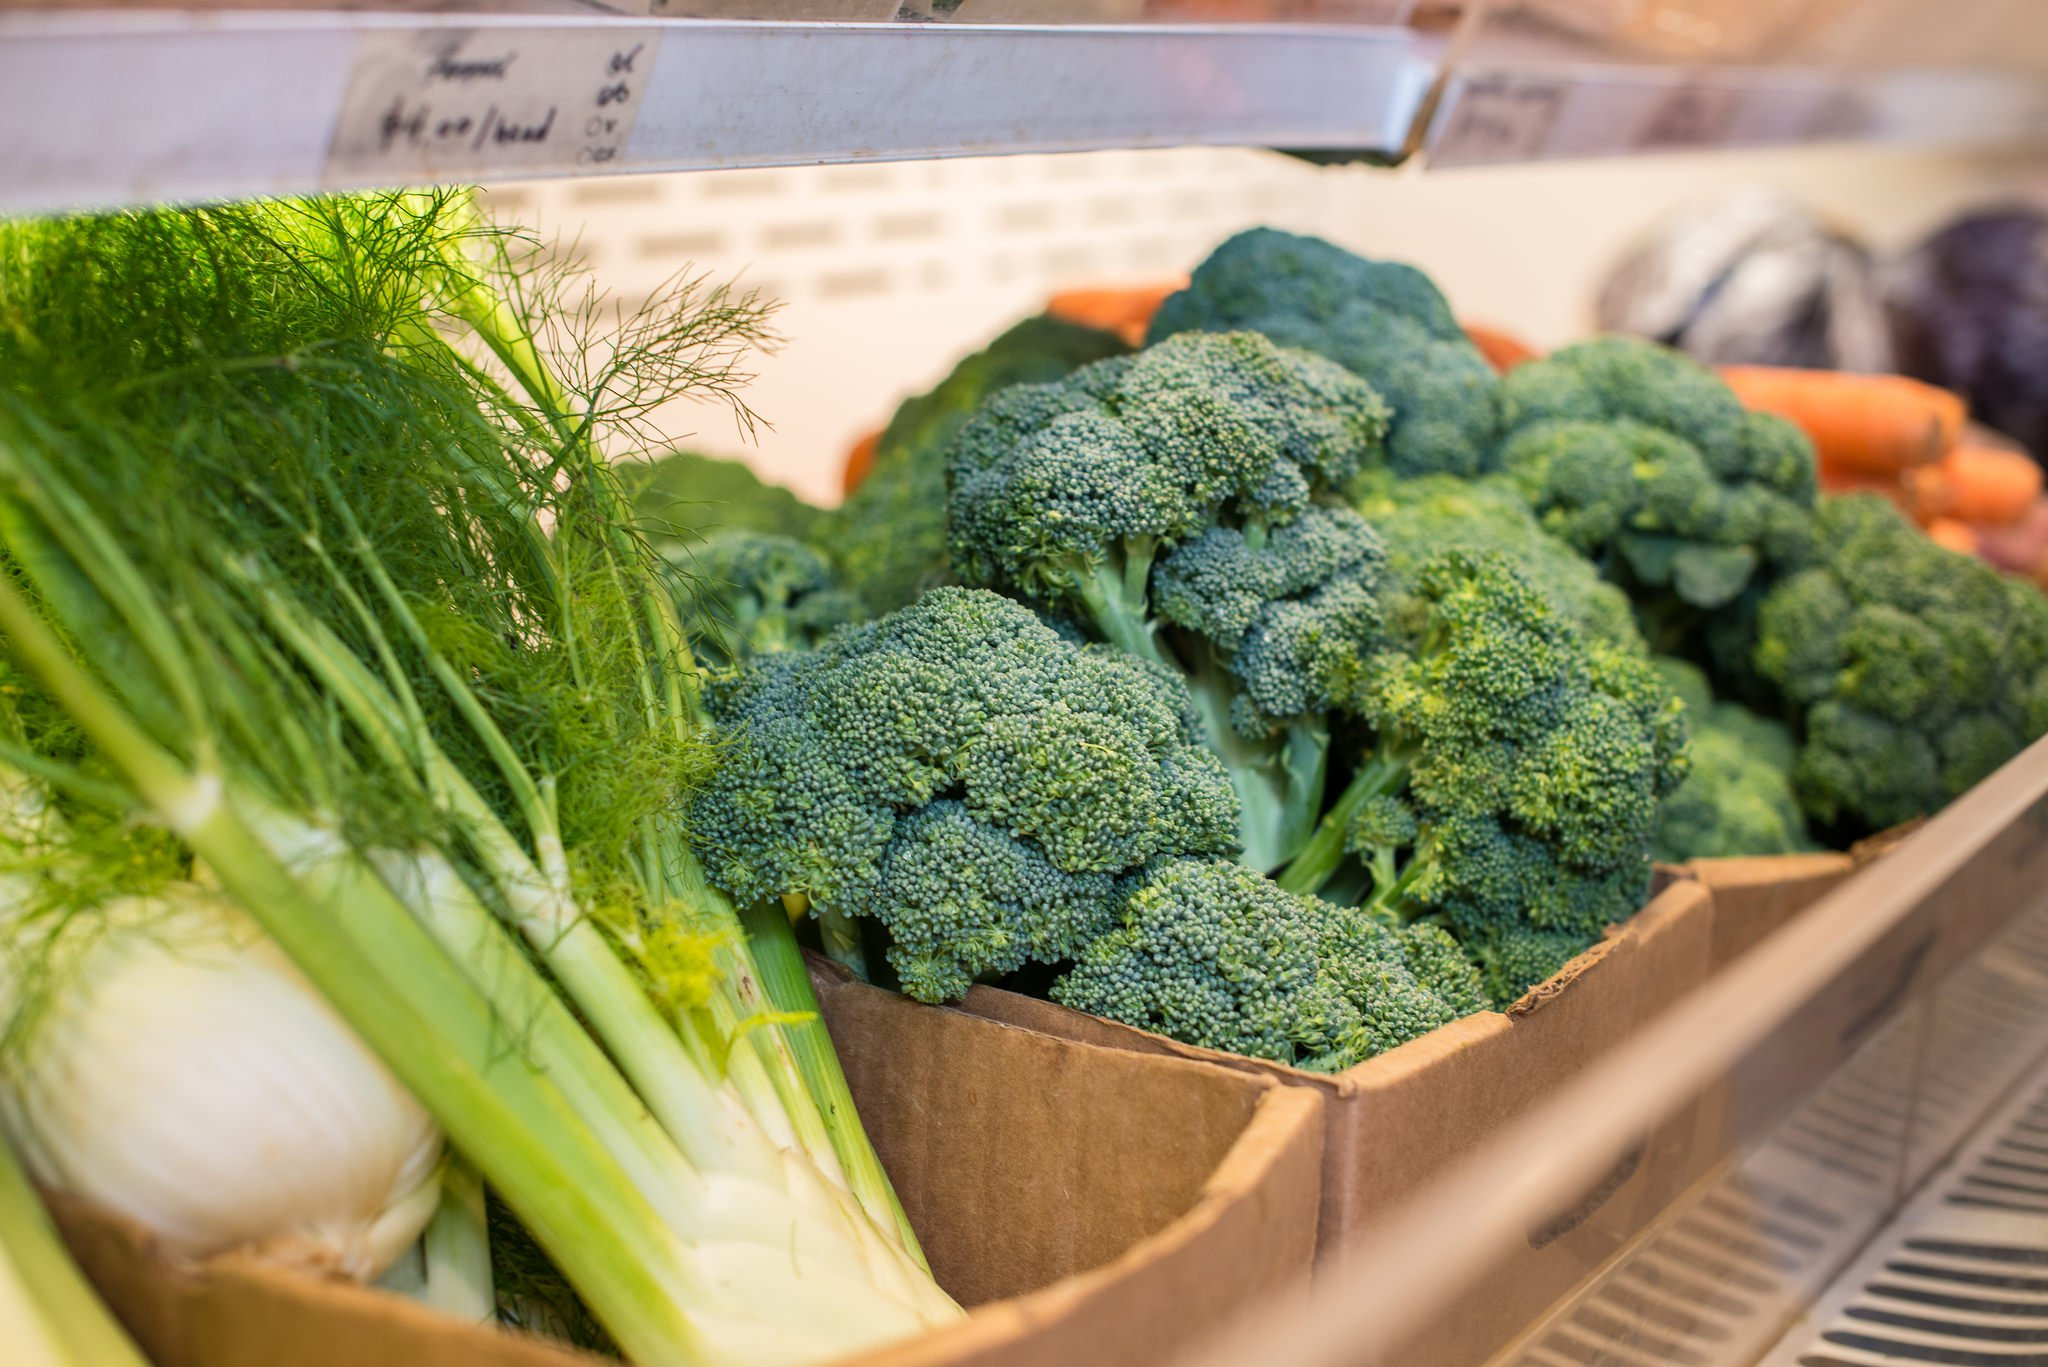 usda_broccoli_fennel.jpg